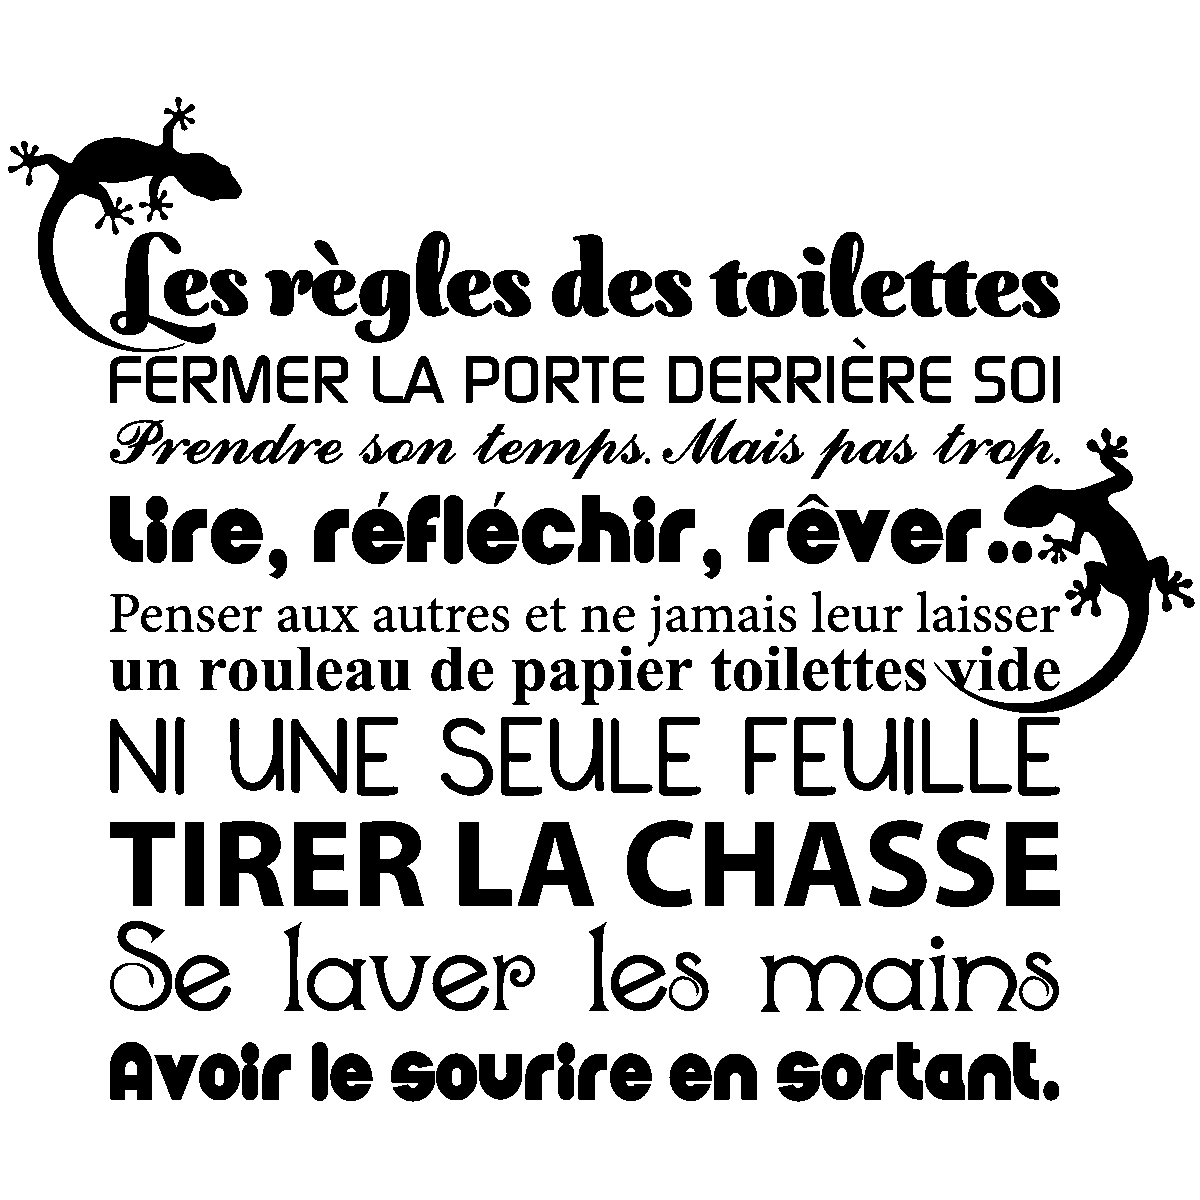 Favori Sticker citation Les règles des toilettes – Stickers Toilettes  VJ56